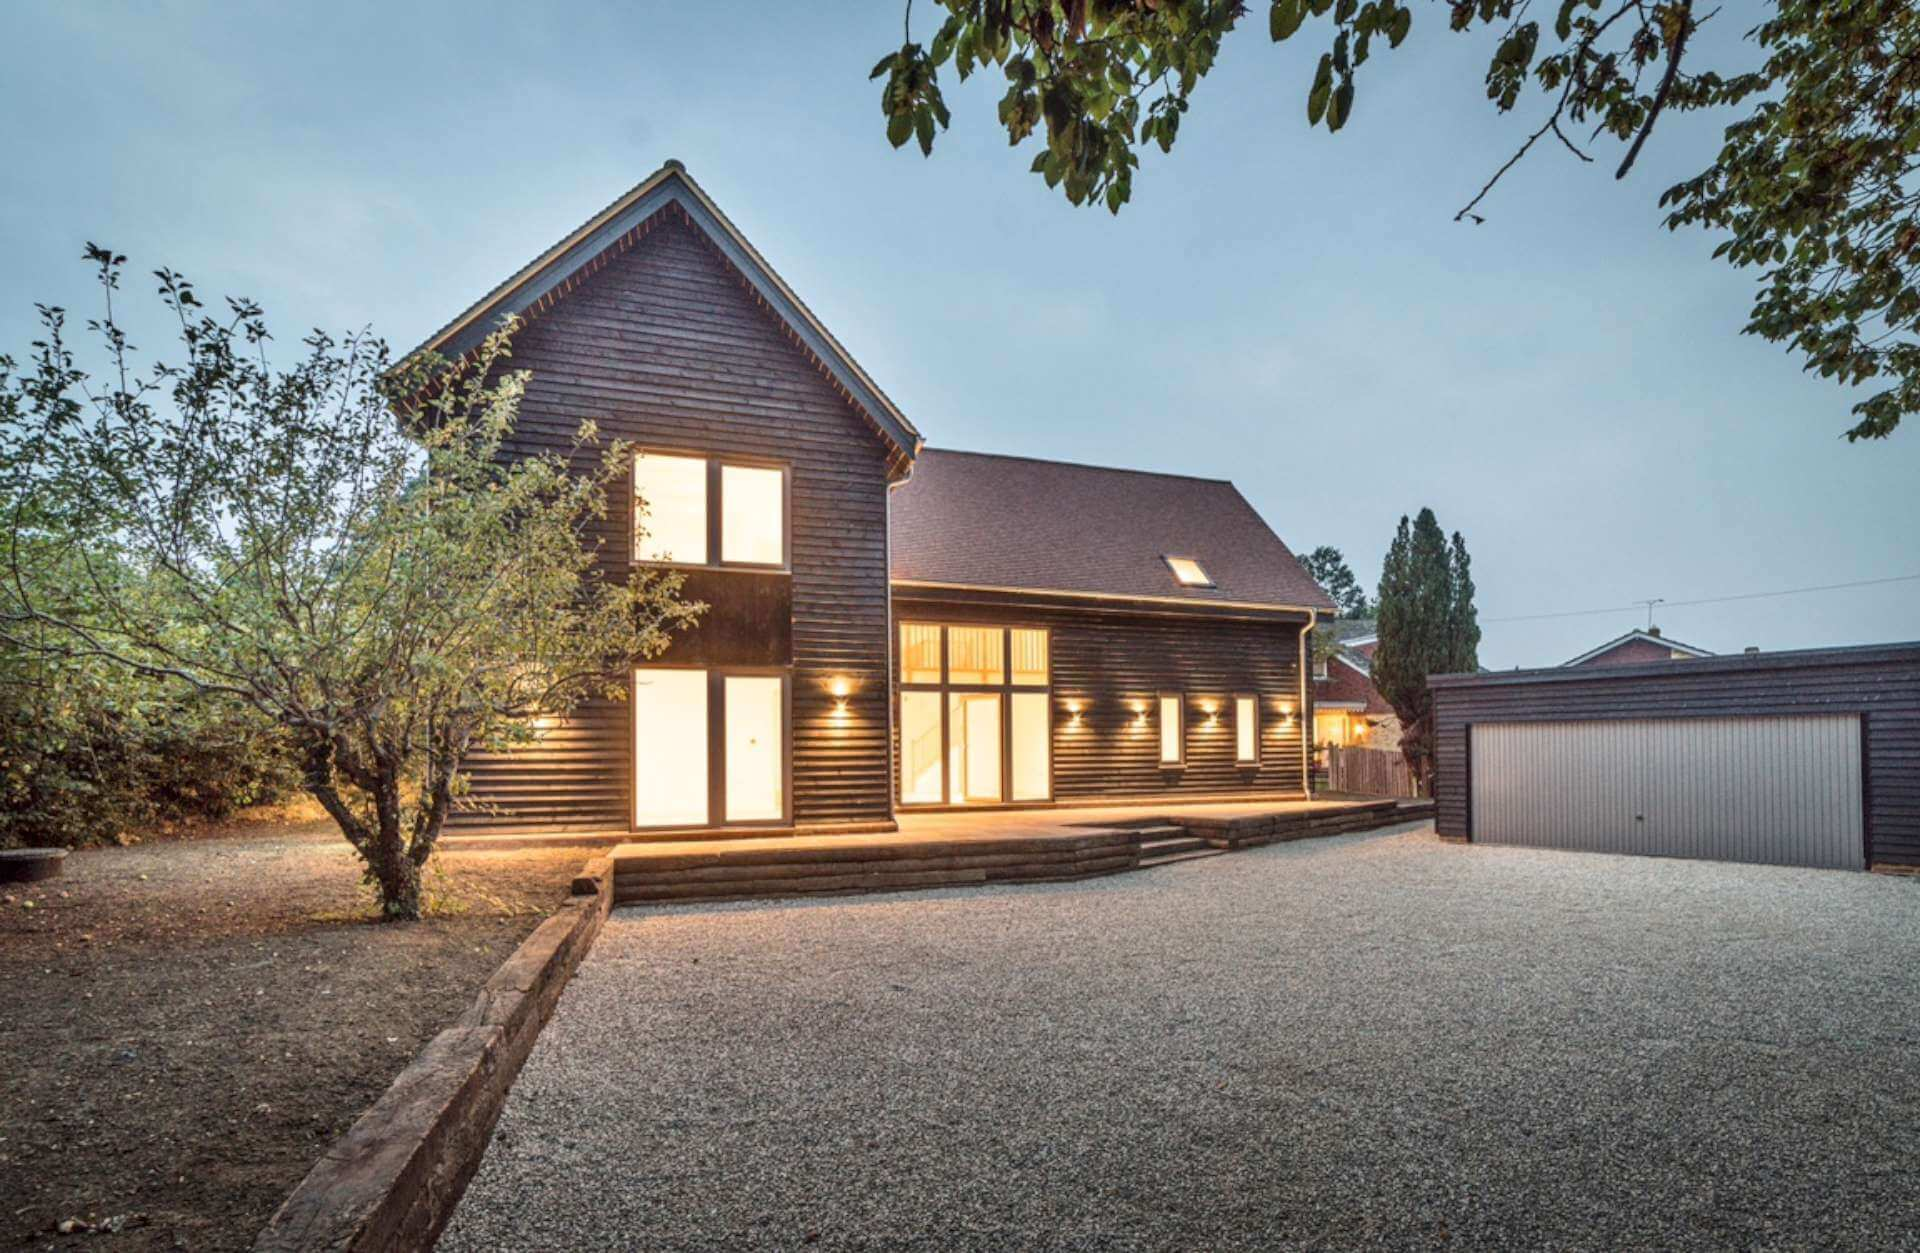 Bespoke-Log-Cabins-in-Kent